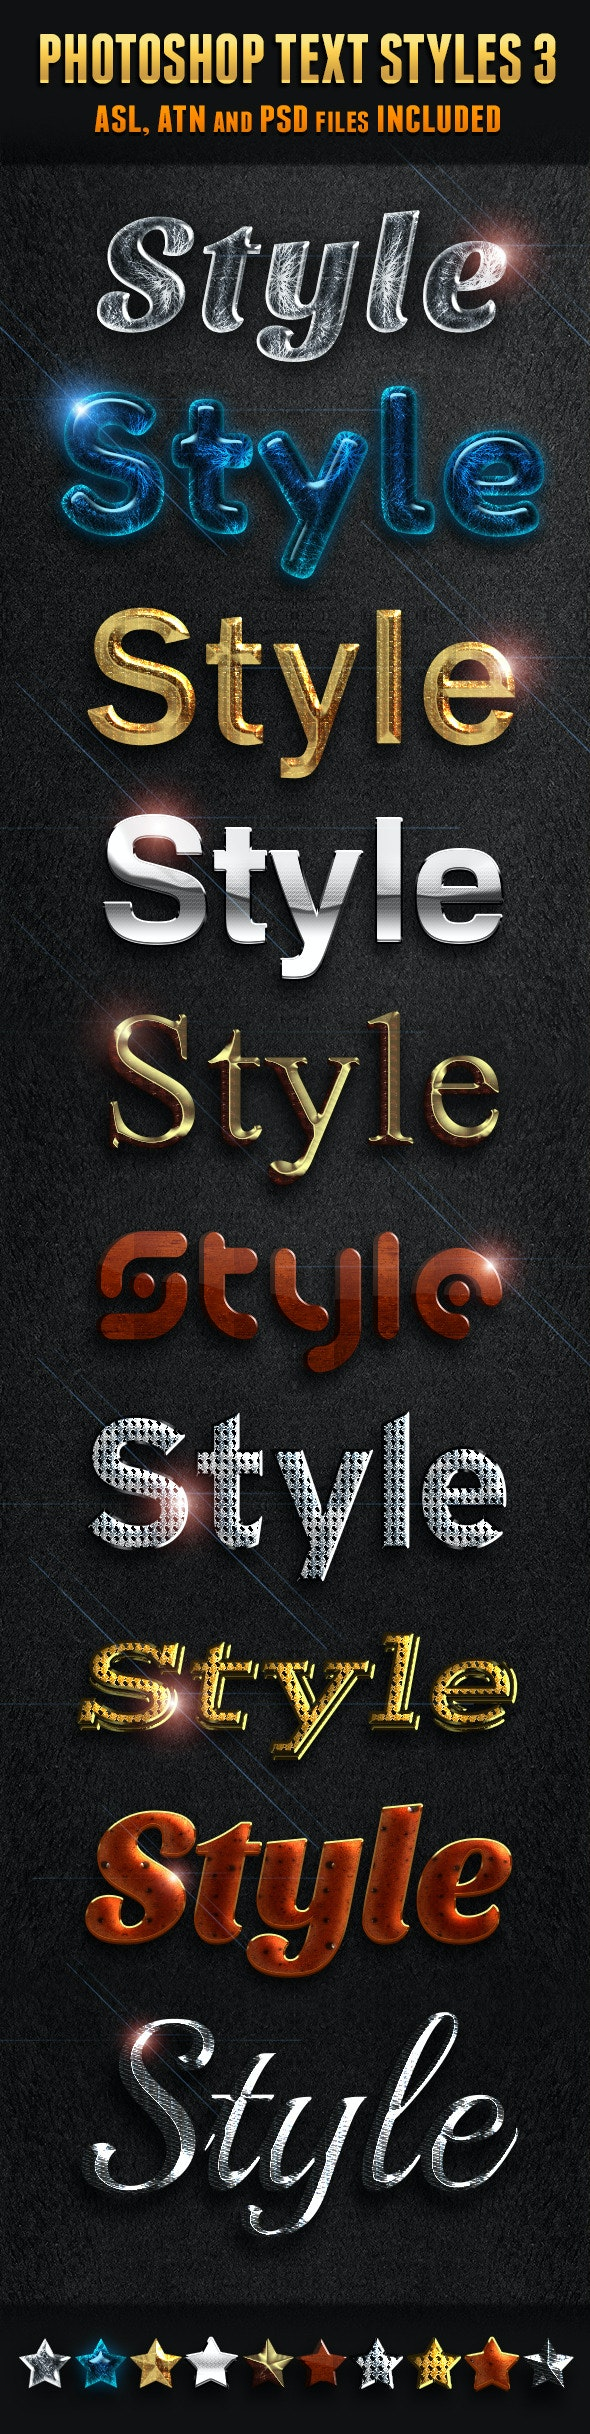 Photoshop Text Styles 3 - Text Effects Styles